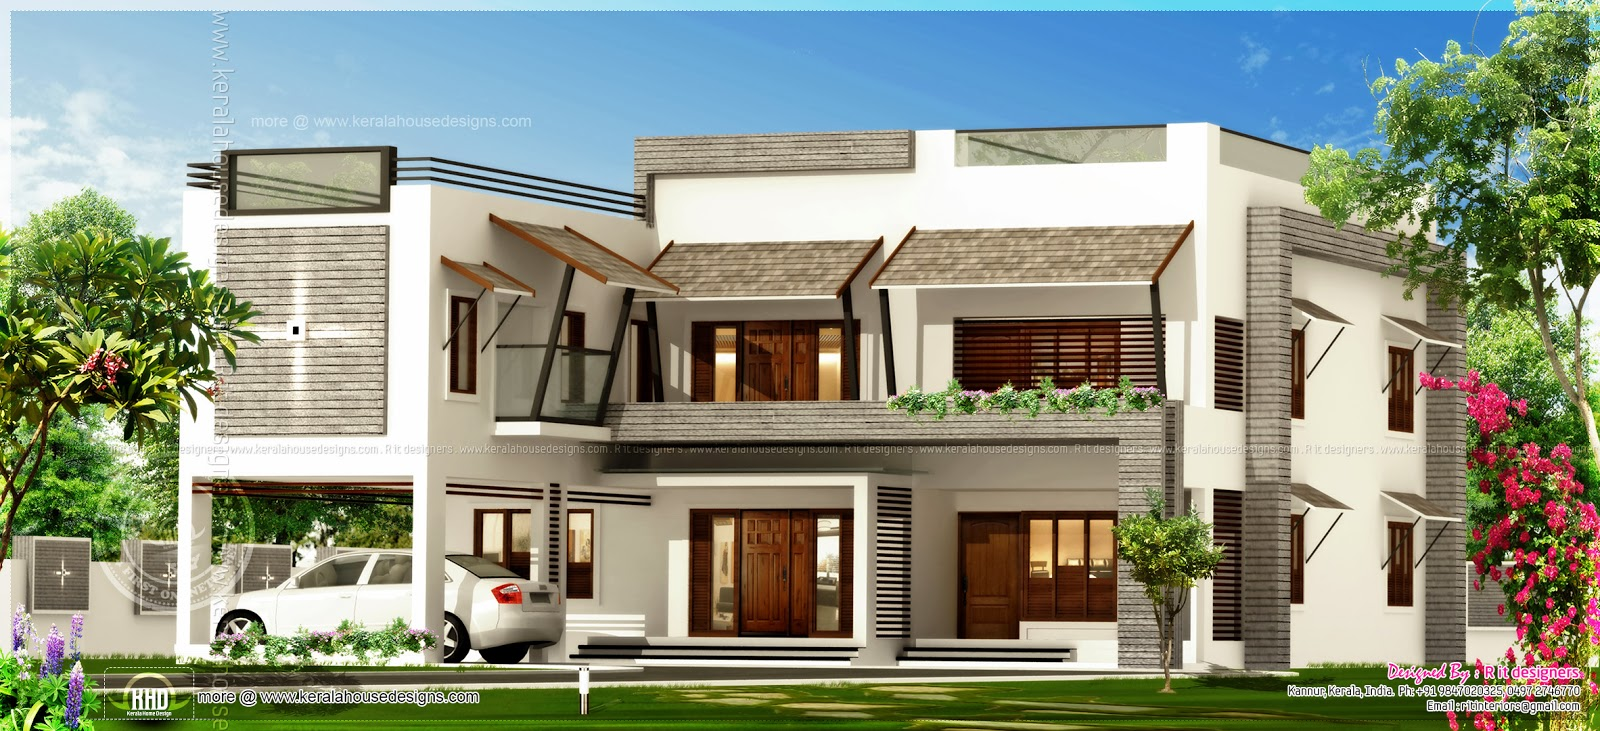 Front Elevation Of Flat Roof Houses : Kerala home design and floor plans luxury flat roof house